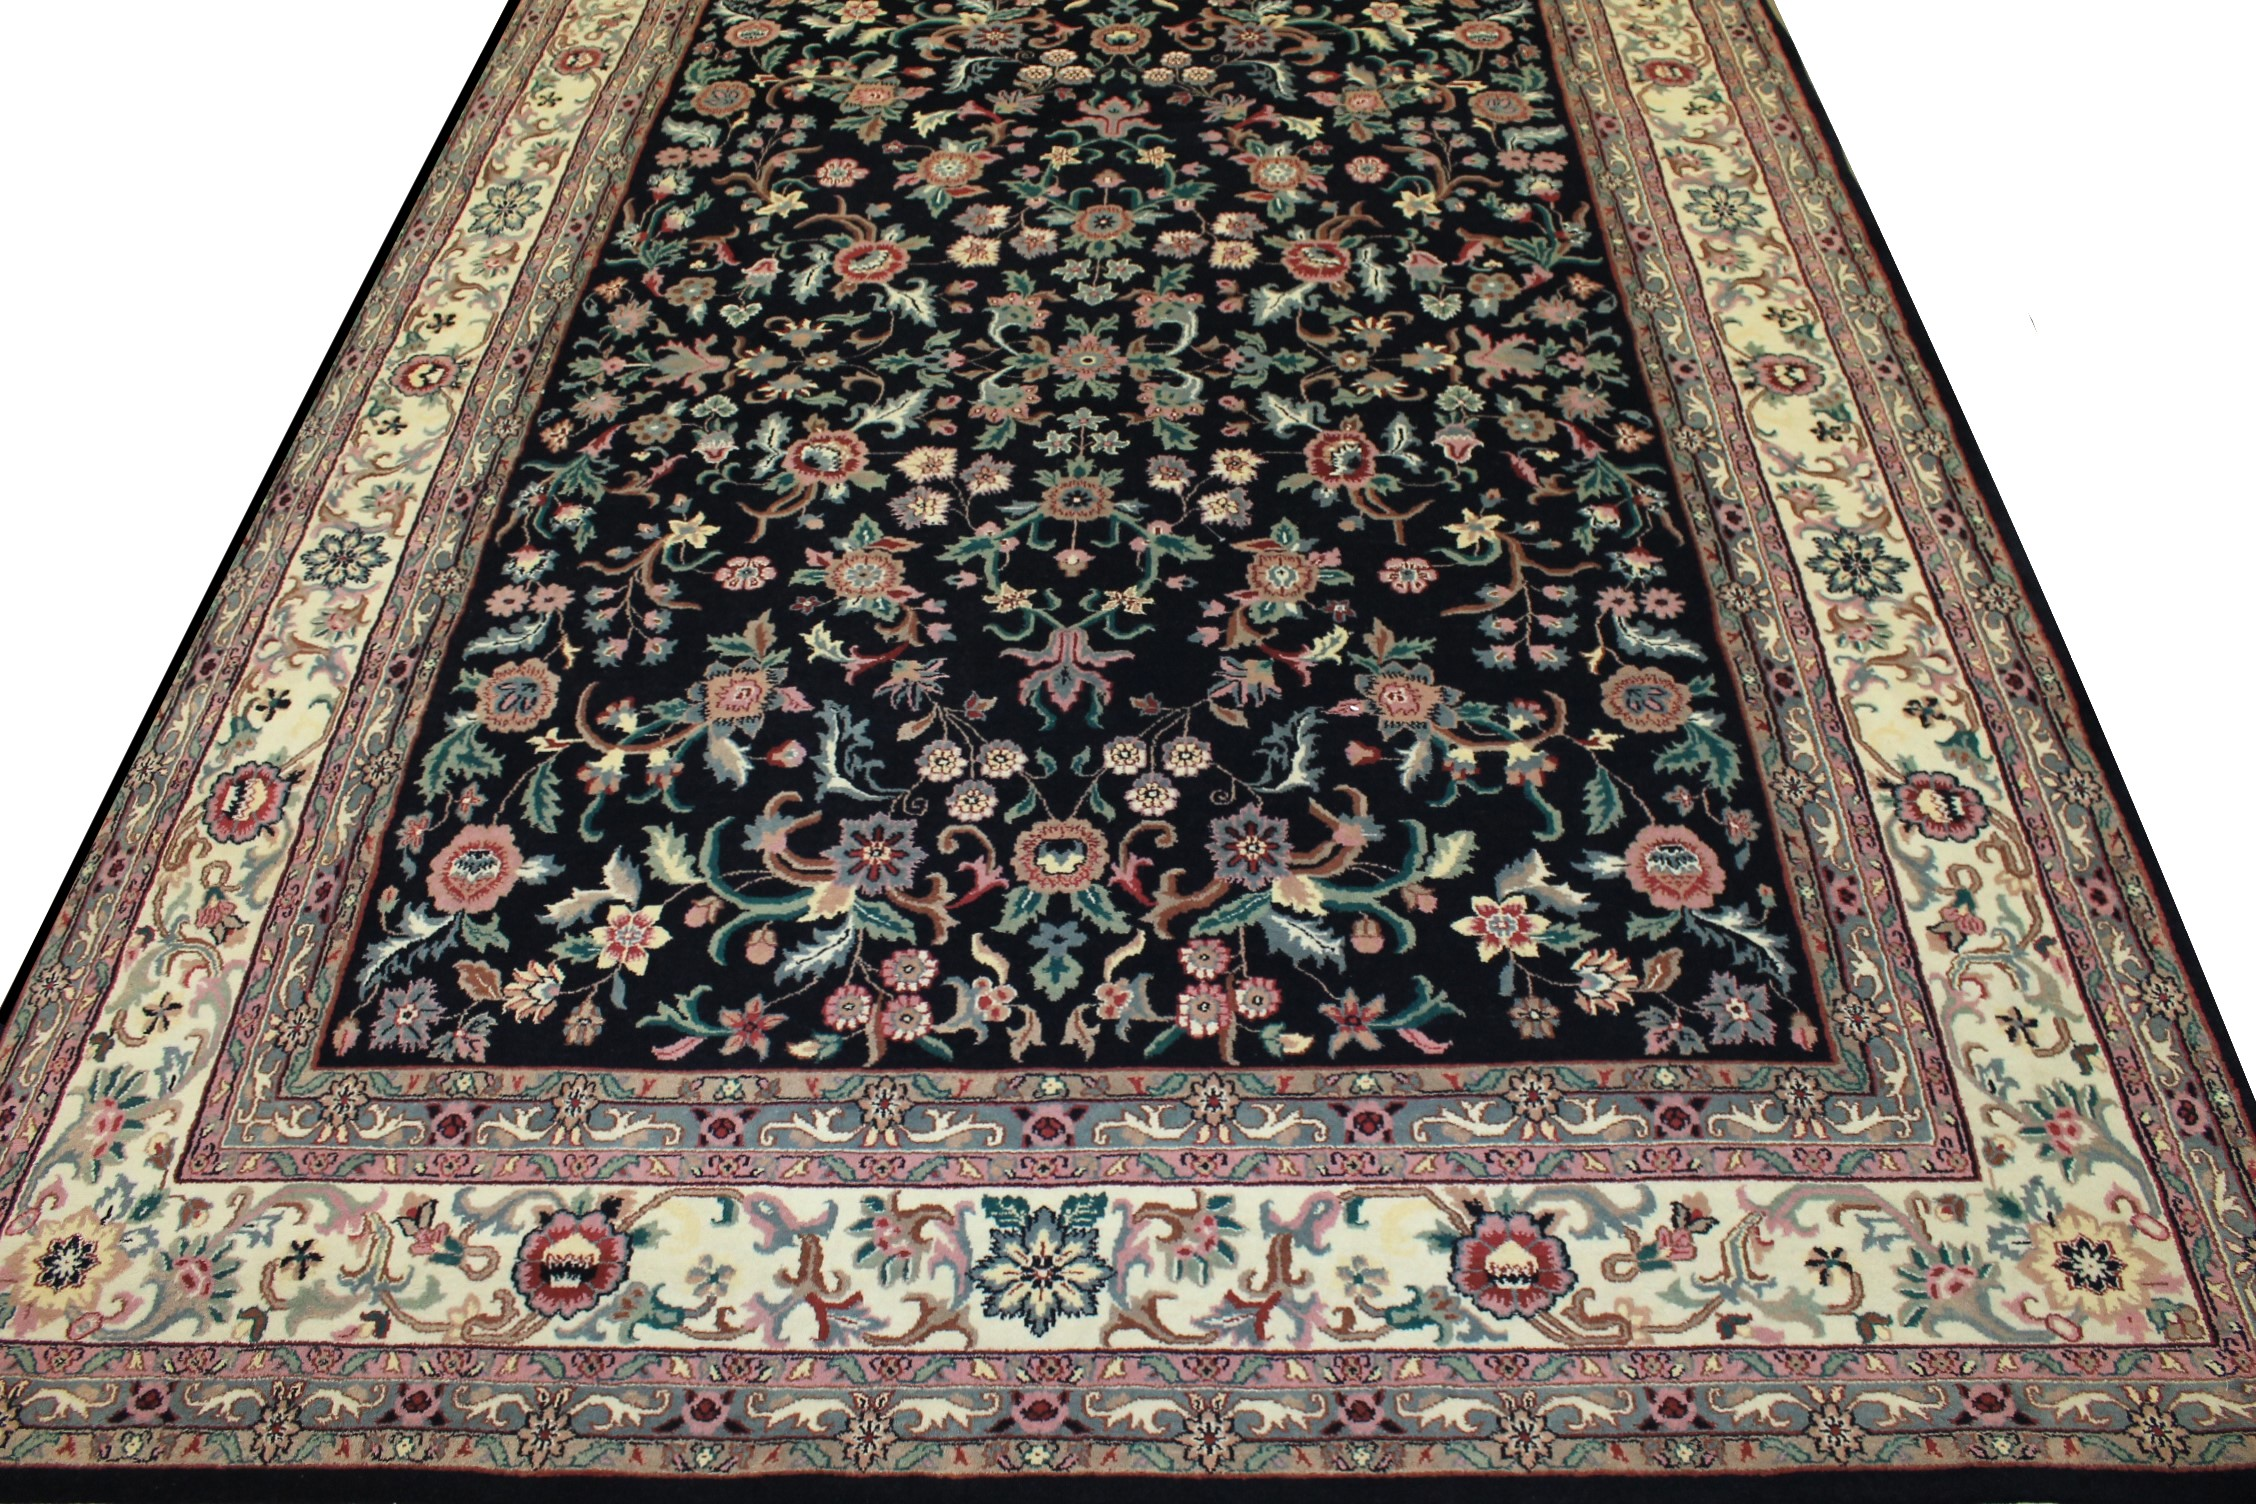 9x12 Traditional Hand Knotted Wool Area Rug - MR0243